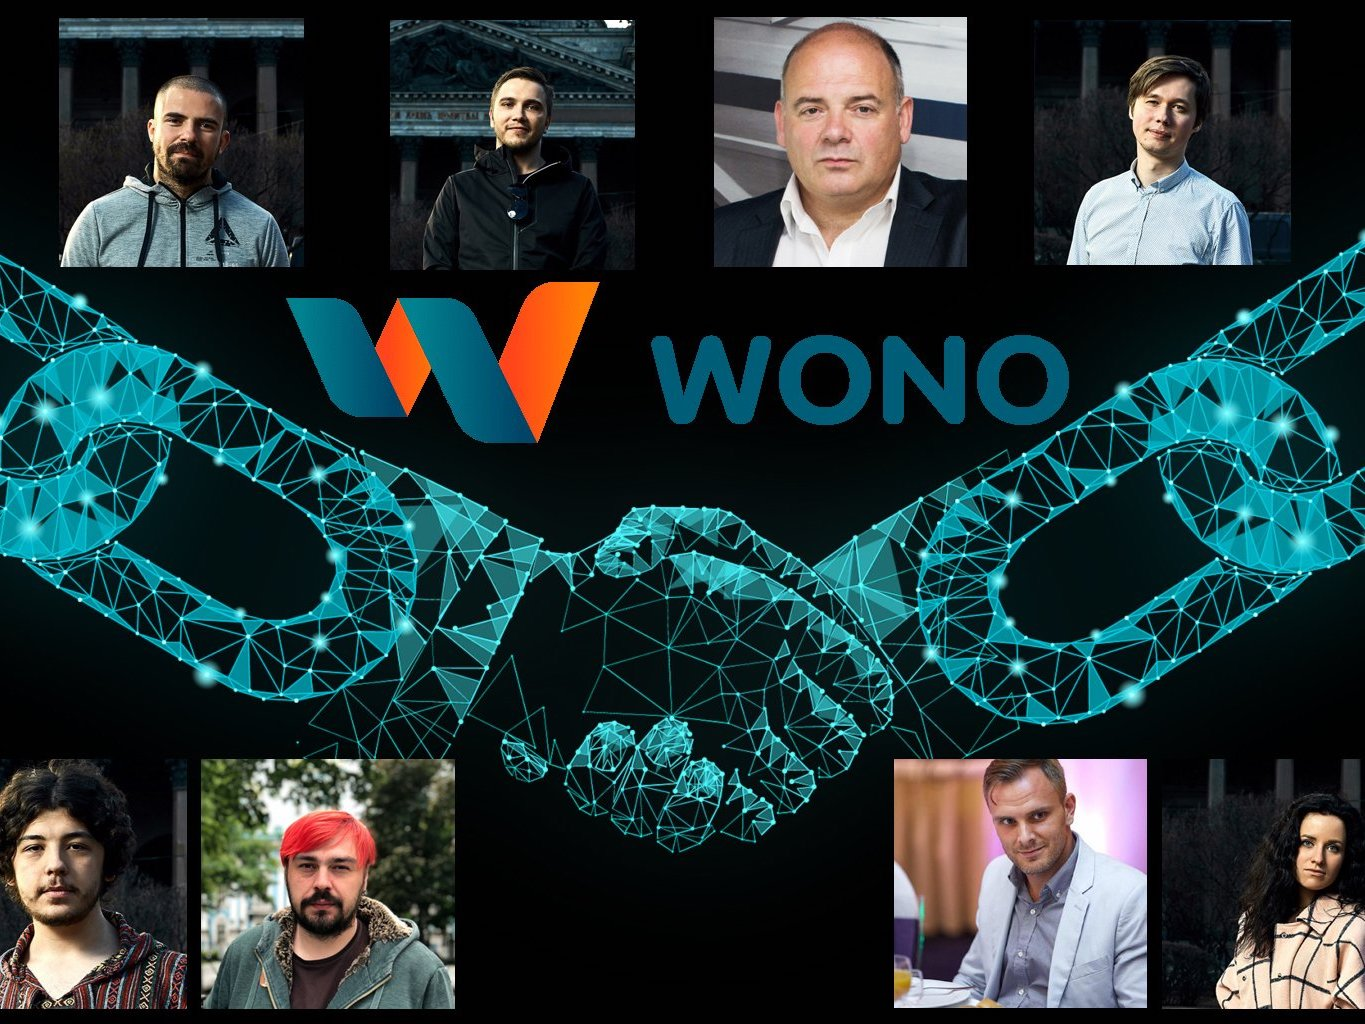 [ICO REVIEW] WONO - revolutionary idea for sharing economy